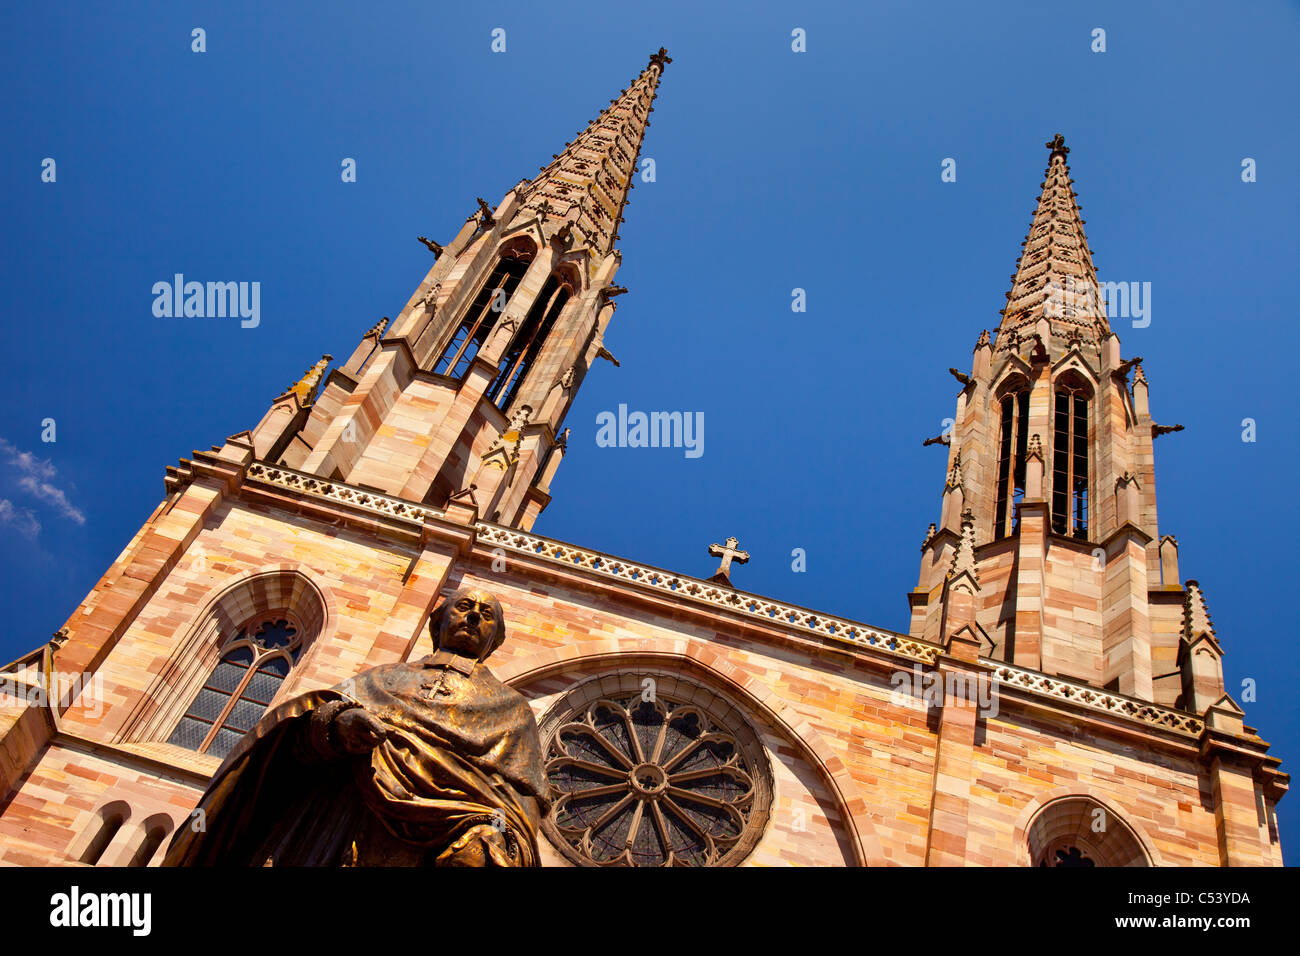 Saint Pierre and Saint Paul Church in Obernai, Bas-Rhin Alsace France - Stock Image